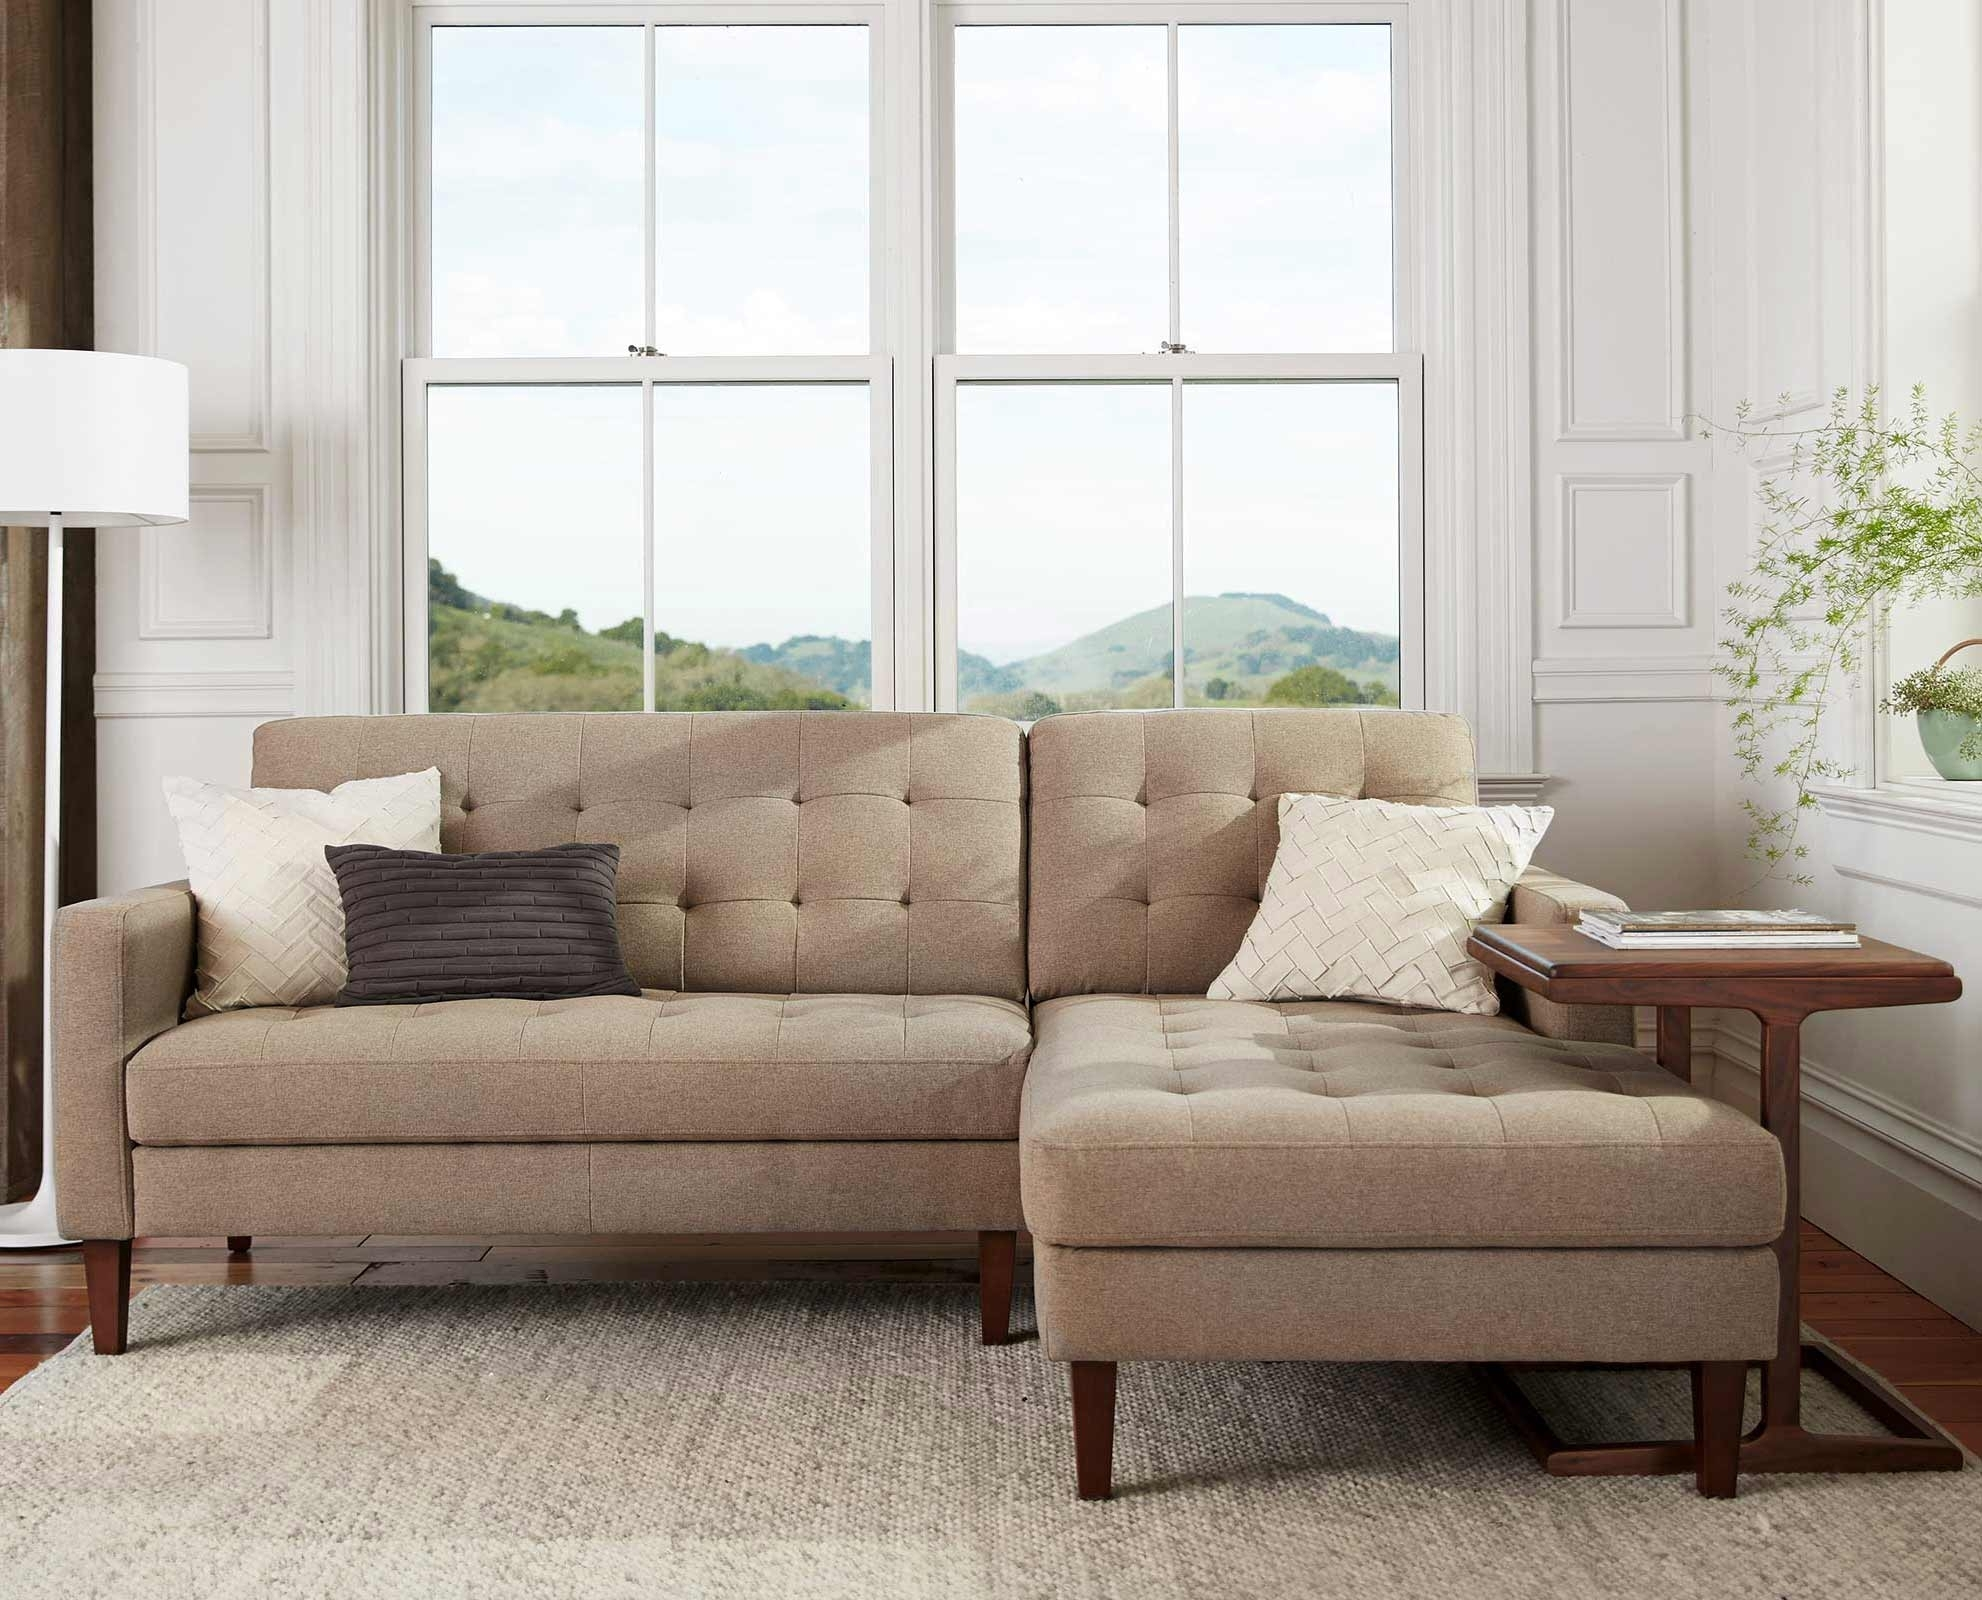 Scandinavian Designs – Create A Relaxing Aesthetic With The Camilla Inside Dania Sectional Sofas (Image 8 of 10)